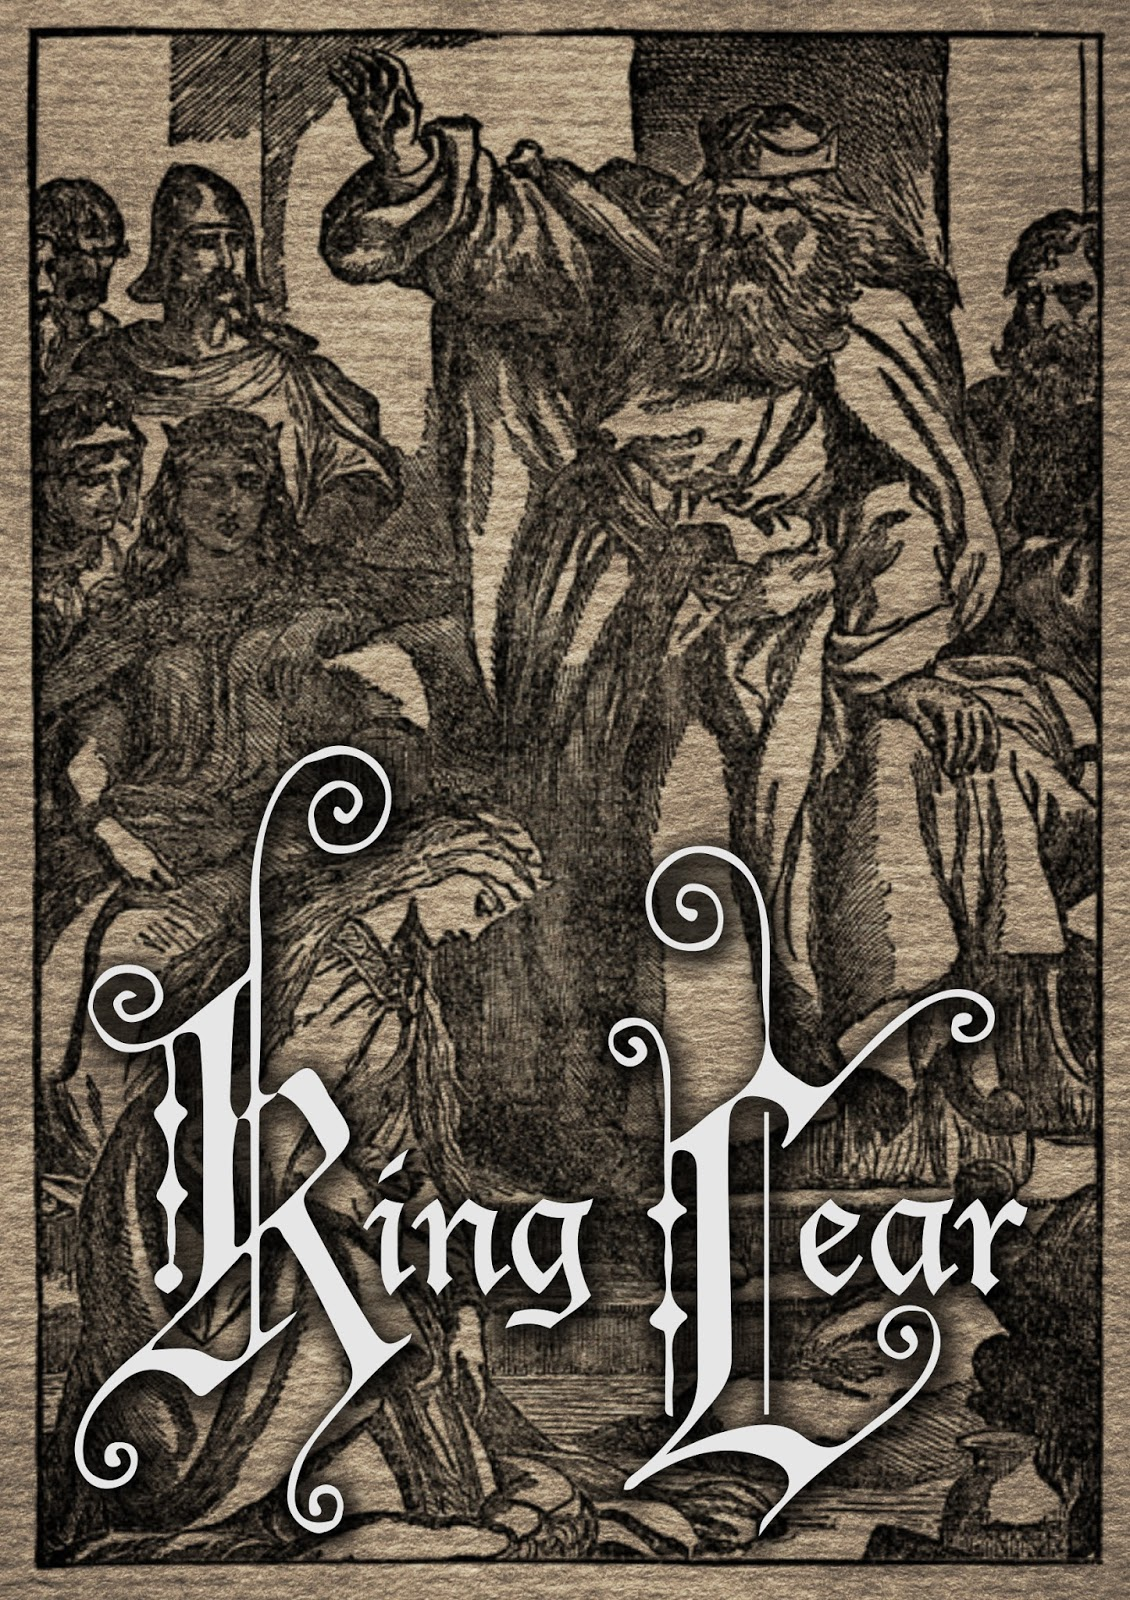 the acceptance of evil in king lear by william shakespeare King lear by: william shakespeare shakespeare's story of a king who divides his realm between his three daughters probes the depths of human suffering and despair.